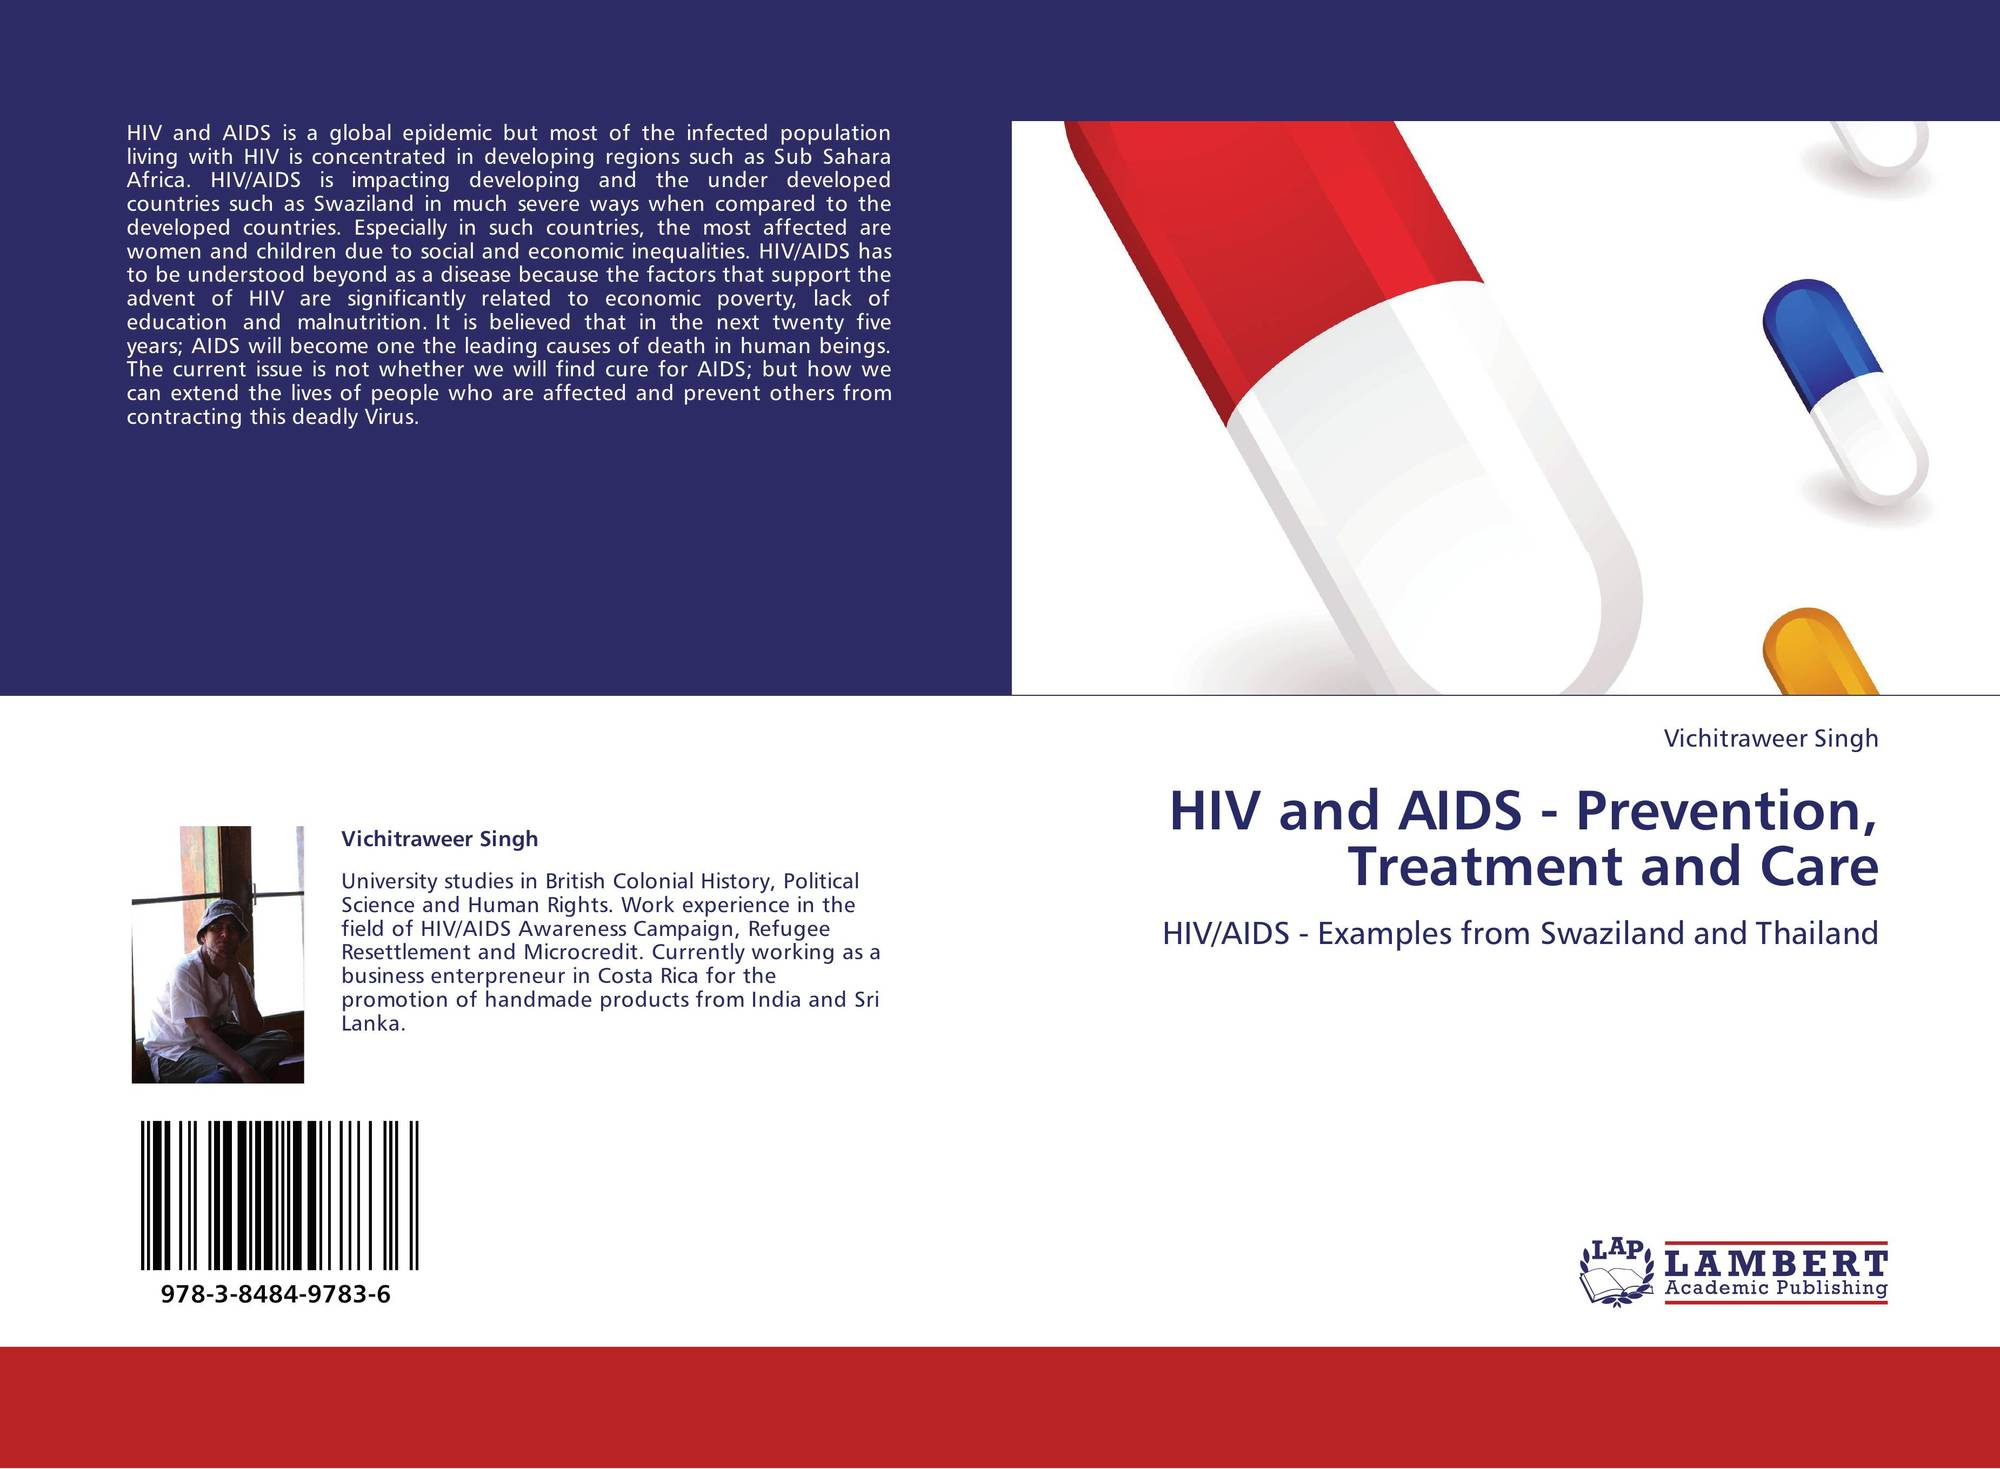 a study of aids and hiv Case studies chronological order approaches to the management of hiv/aids in cuba case study 18 august 2004 the lighthouse.